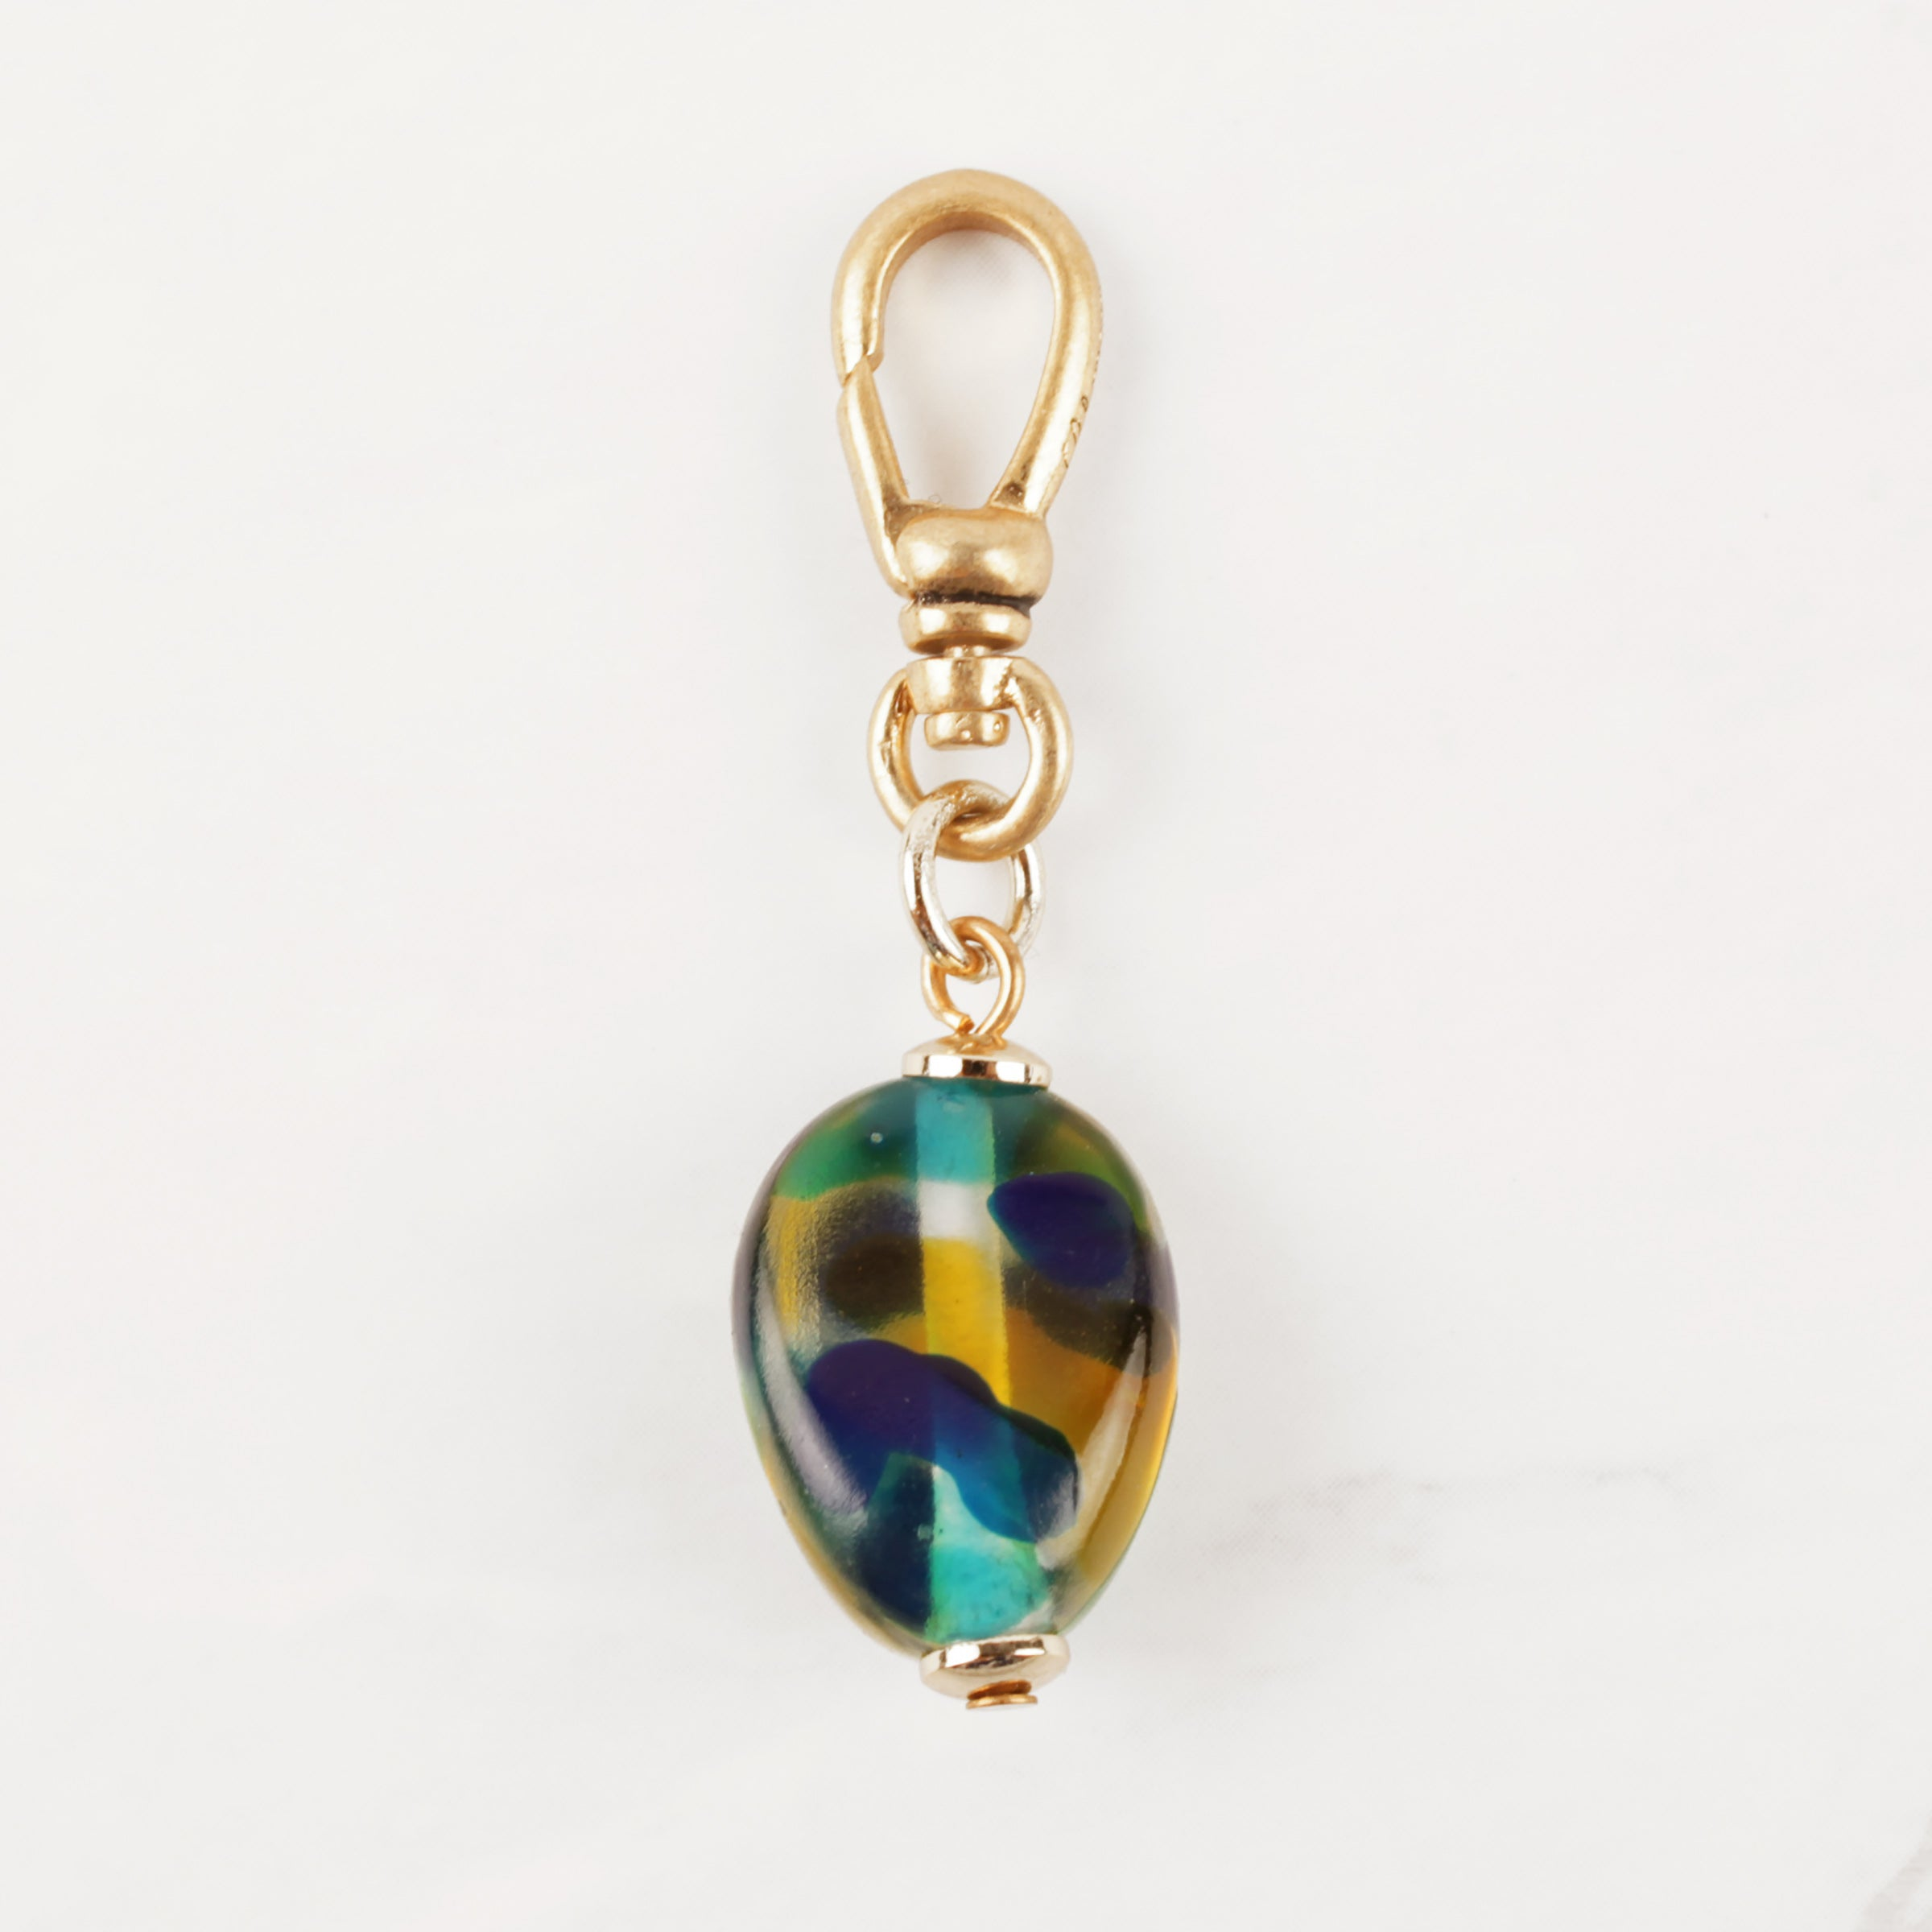 Vintage Spotted Resin Drop Charm